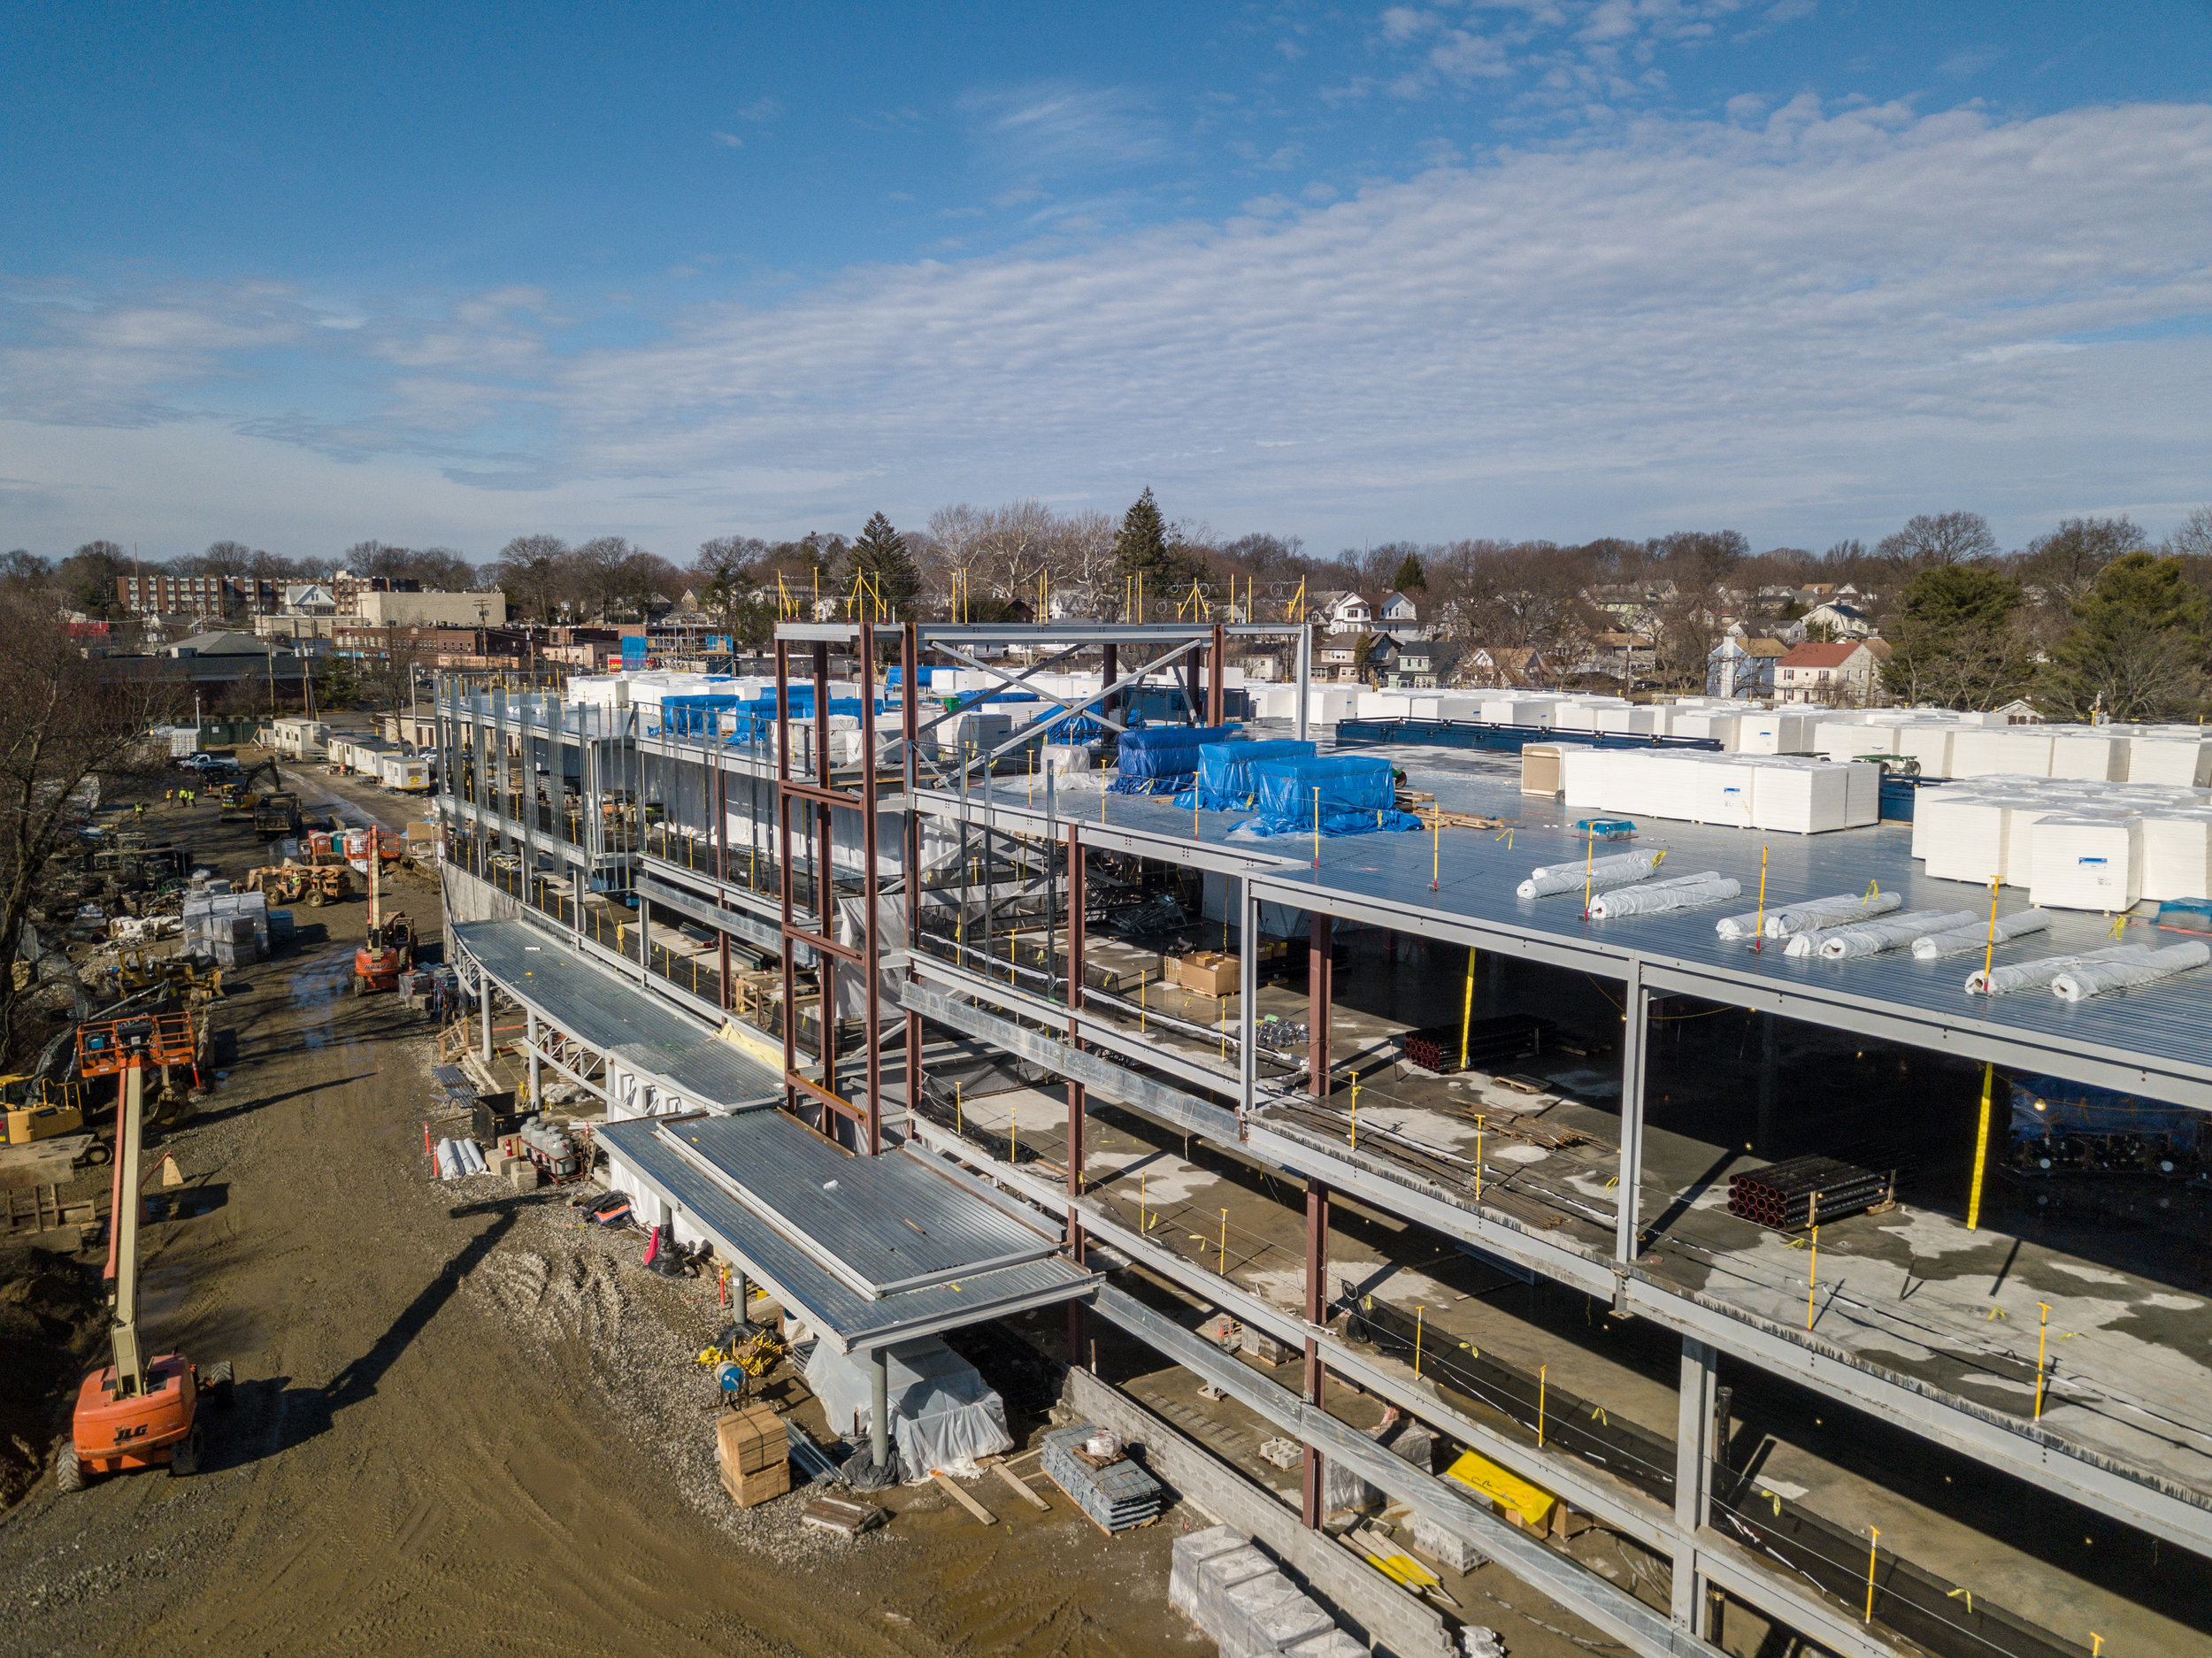 Stratford High Construction 0013 2018-02-24.jpg